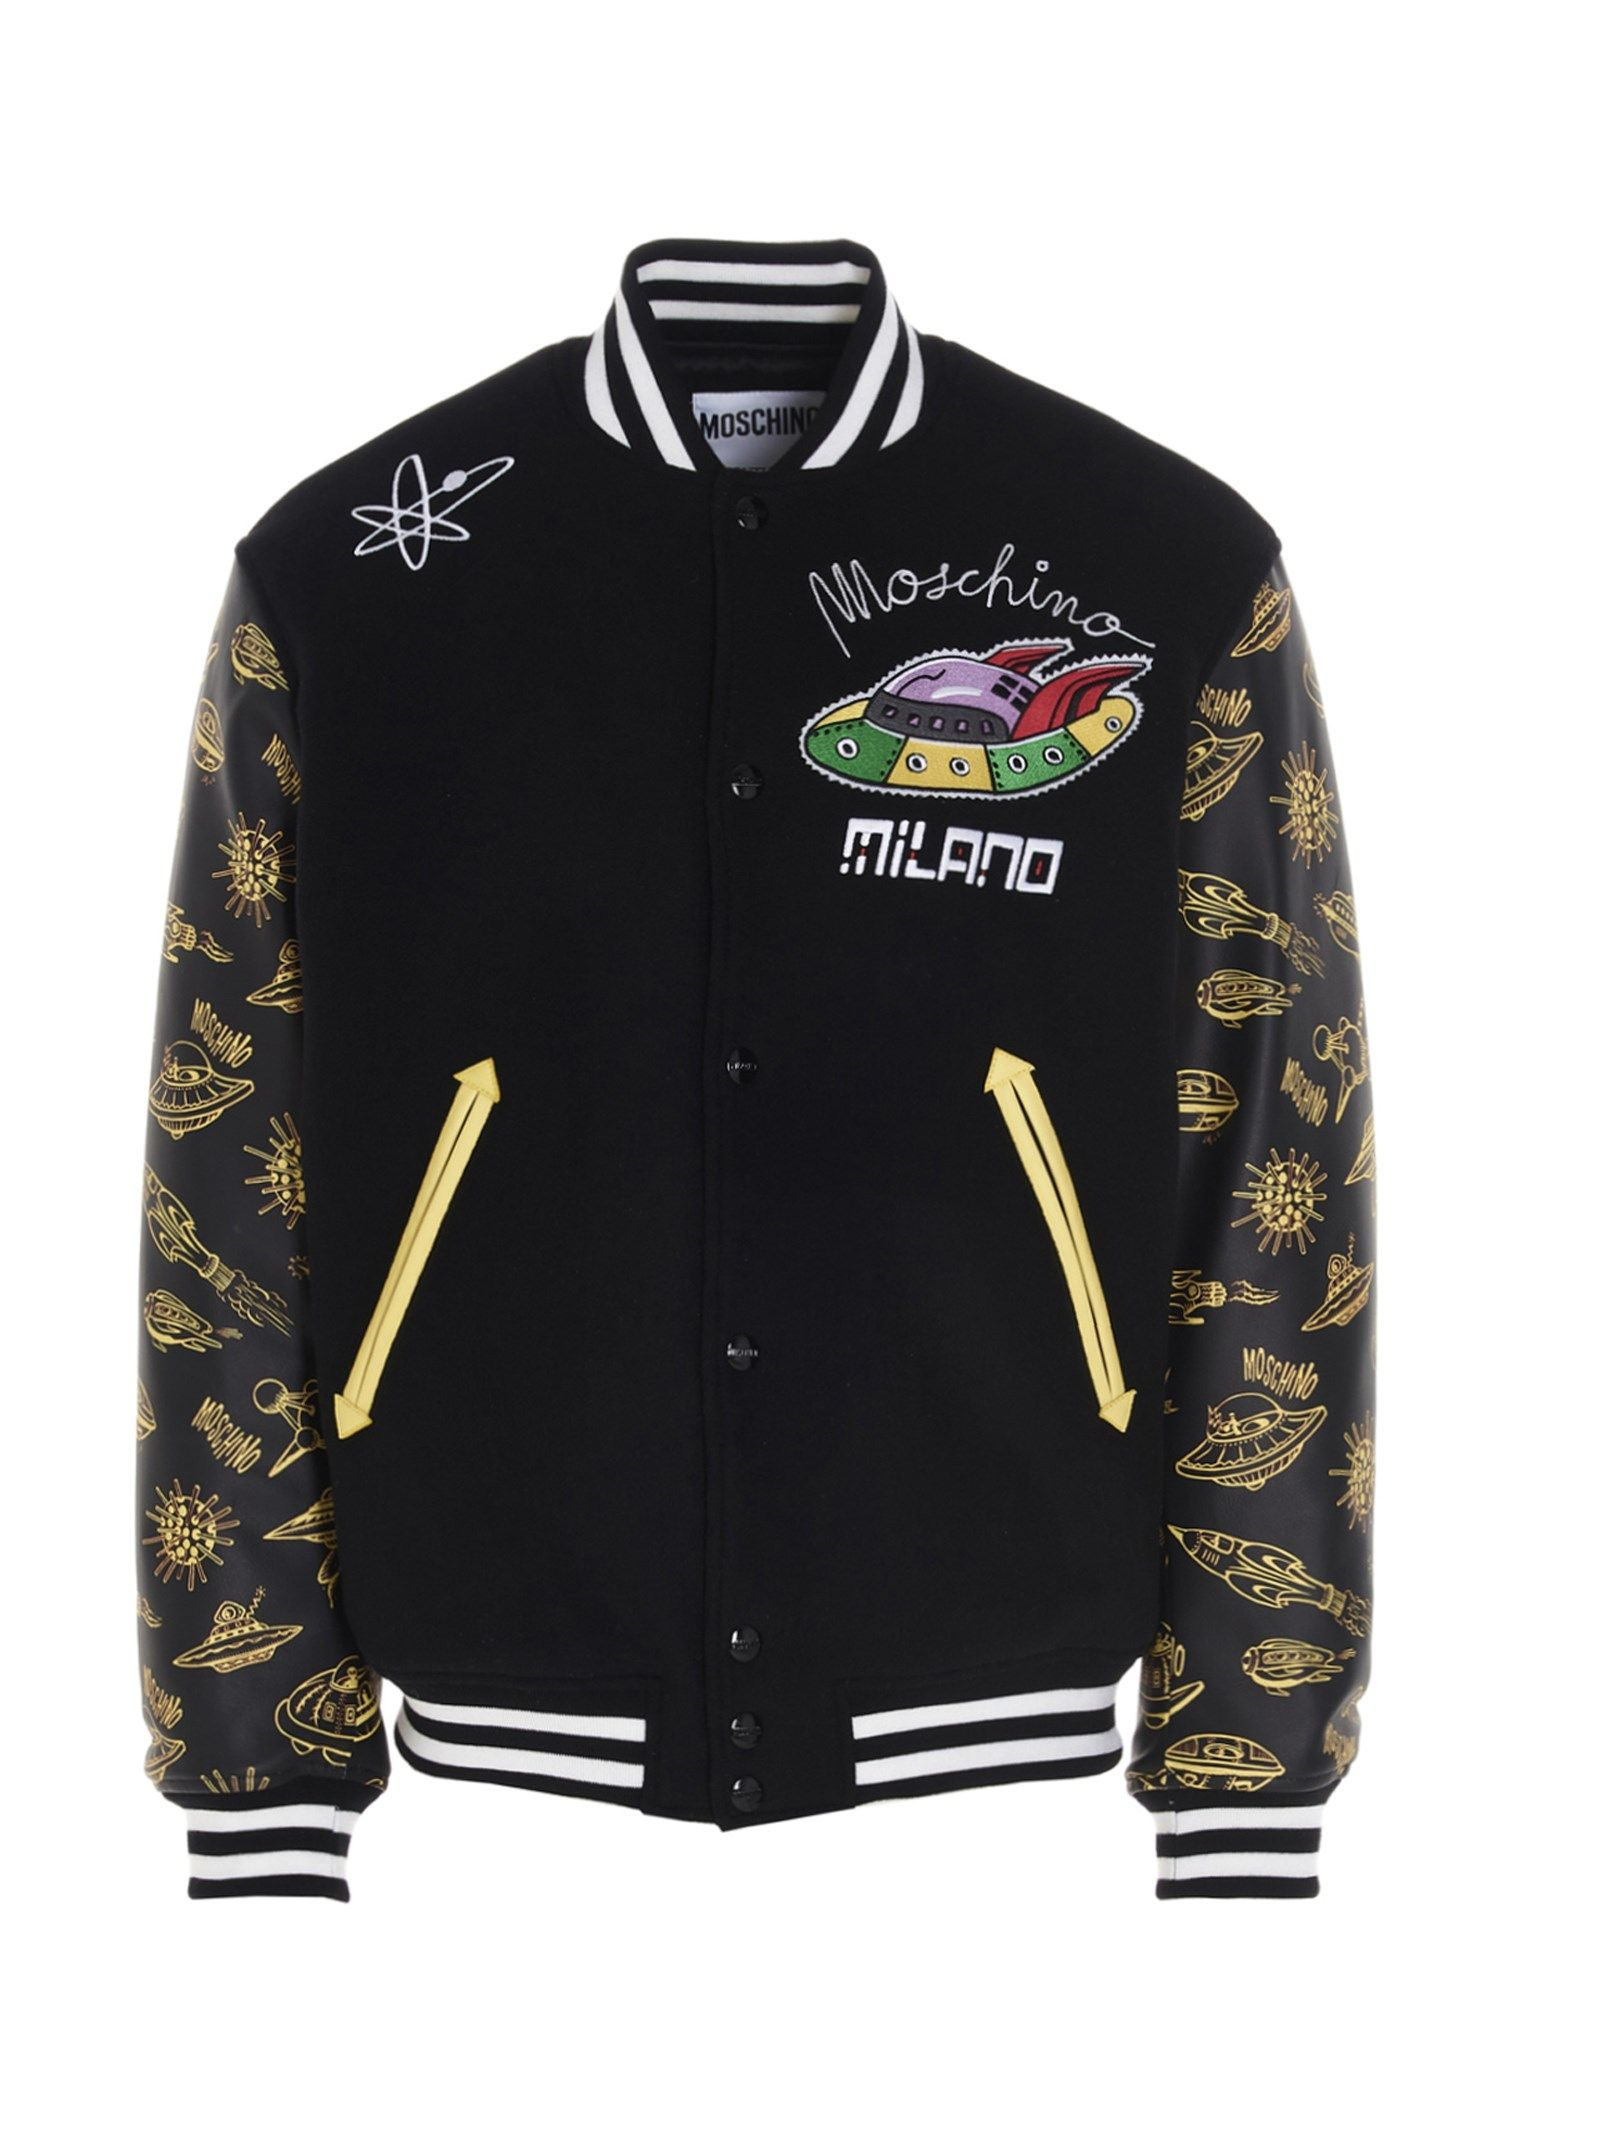 Moschino MOSCHINO MEN'S A061520101555 BLACK OTHER MATERIALS OUTERWEAR JACKET